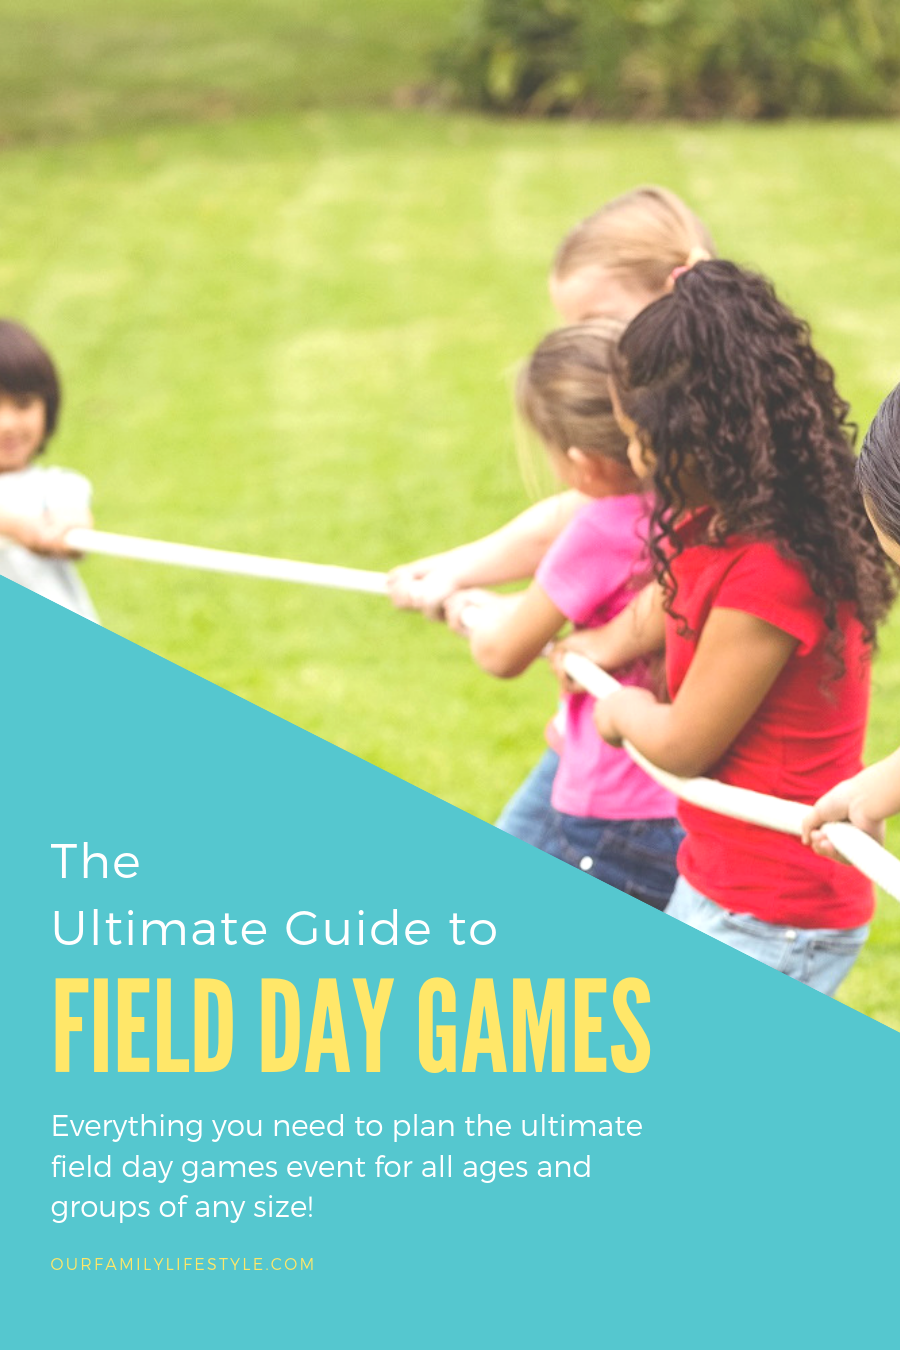 The Ultimate Guide to Field Day Games